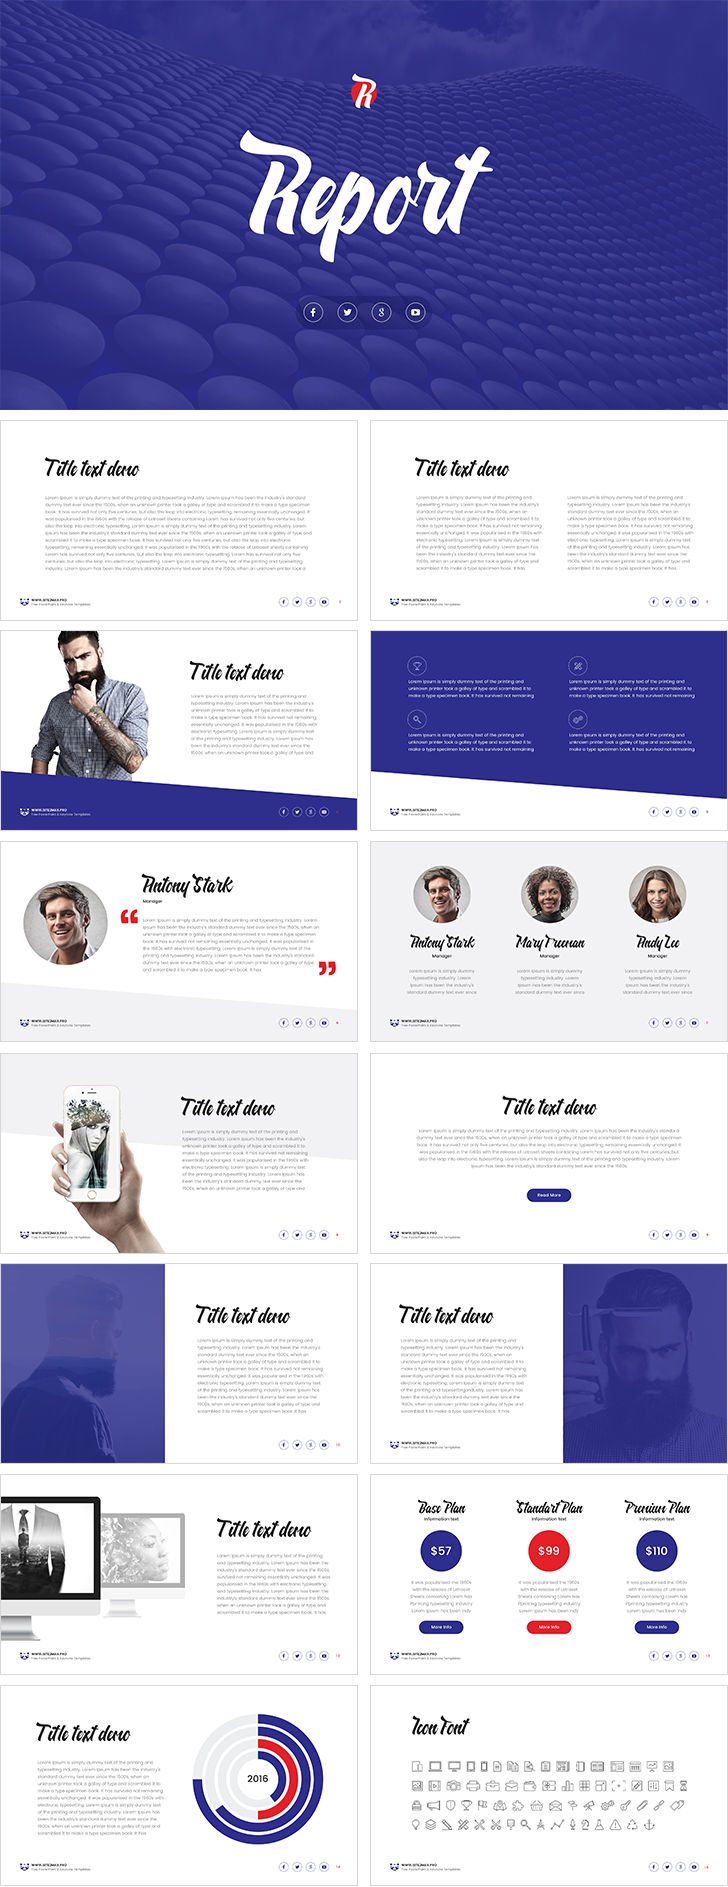 Report free keynote template free download now for Free keynote template